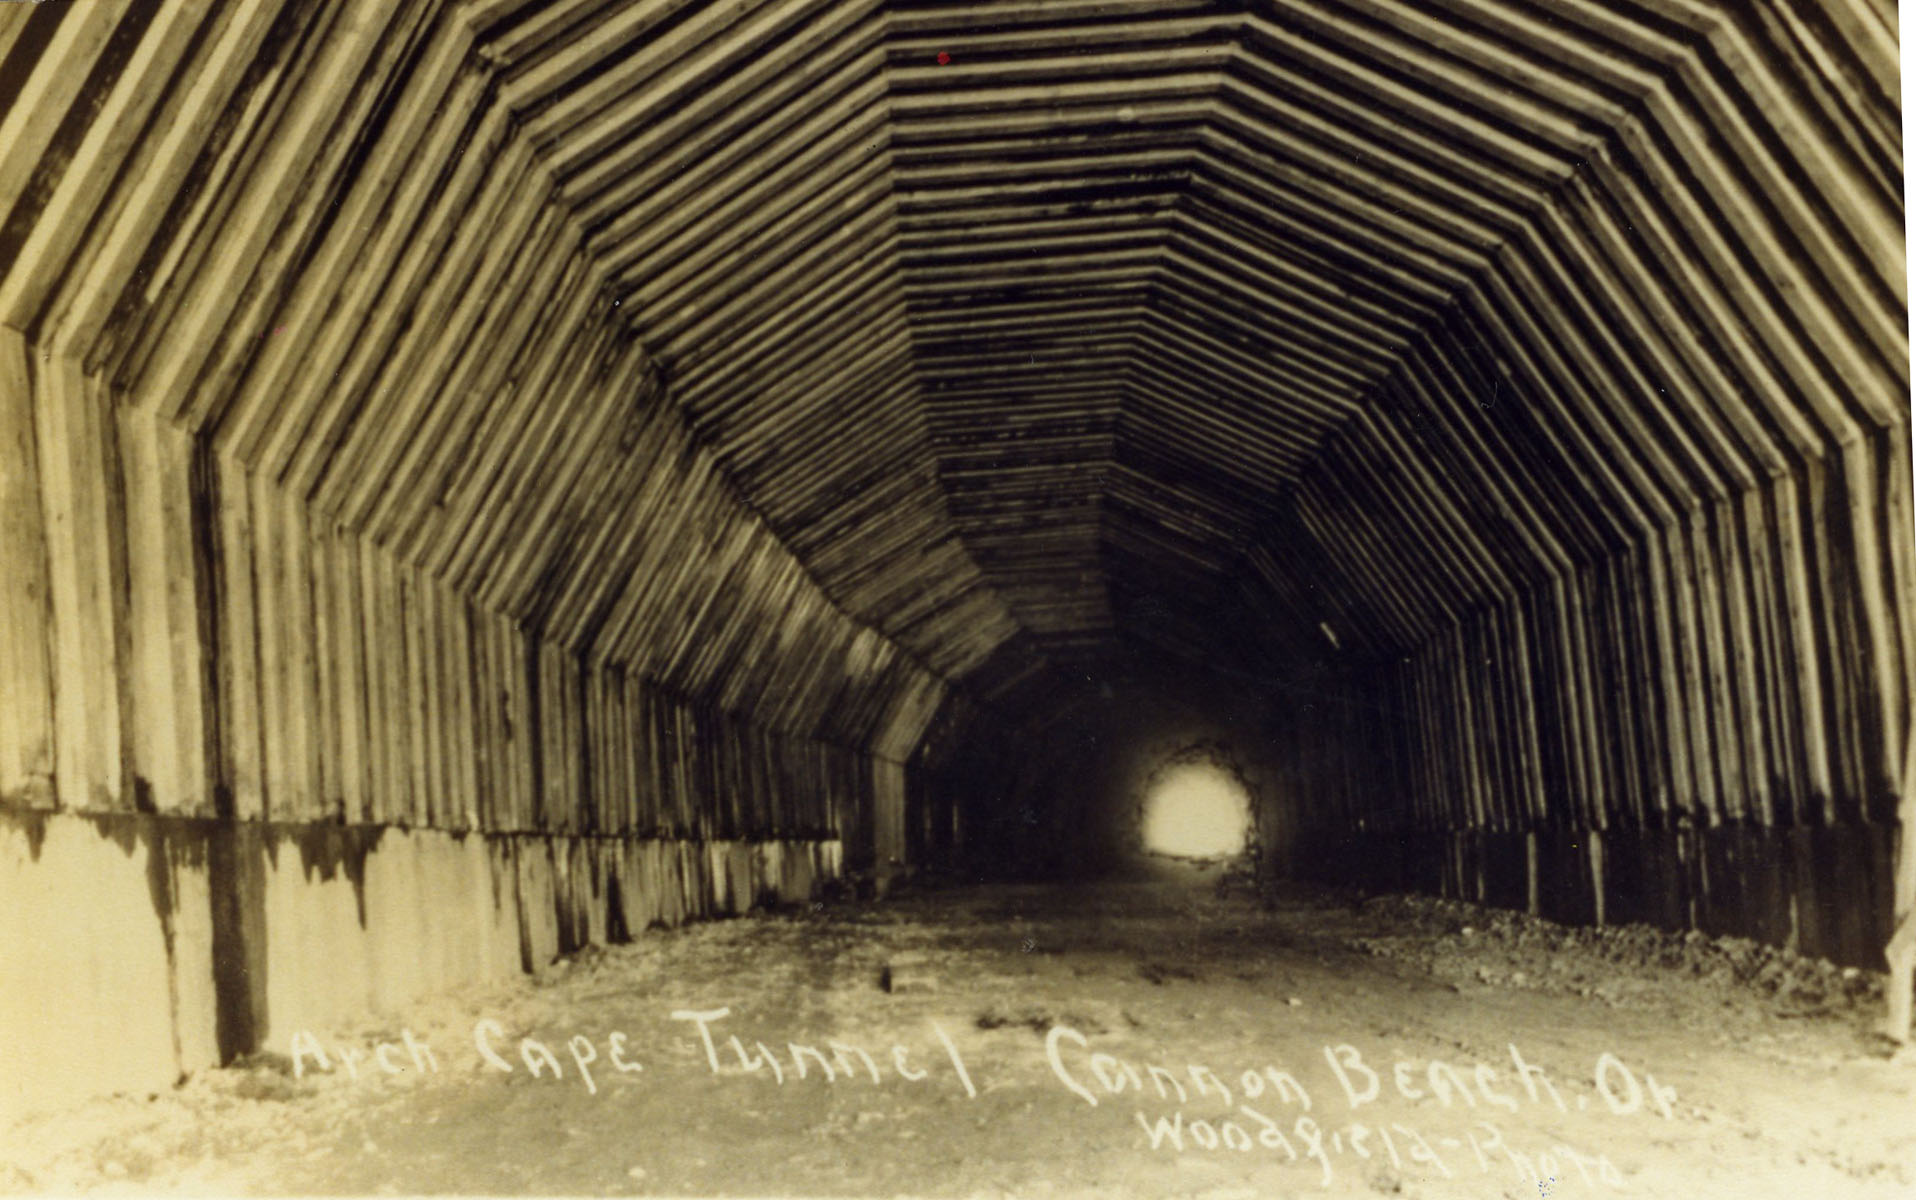 Here is another photo by Frank Woodfield of the Arch Cape tunnel with timber in place, circa 1940.